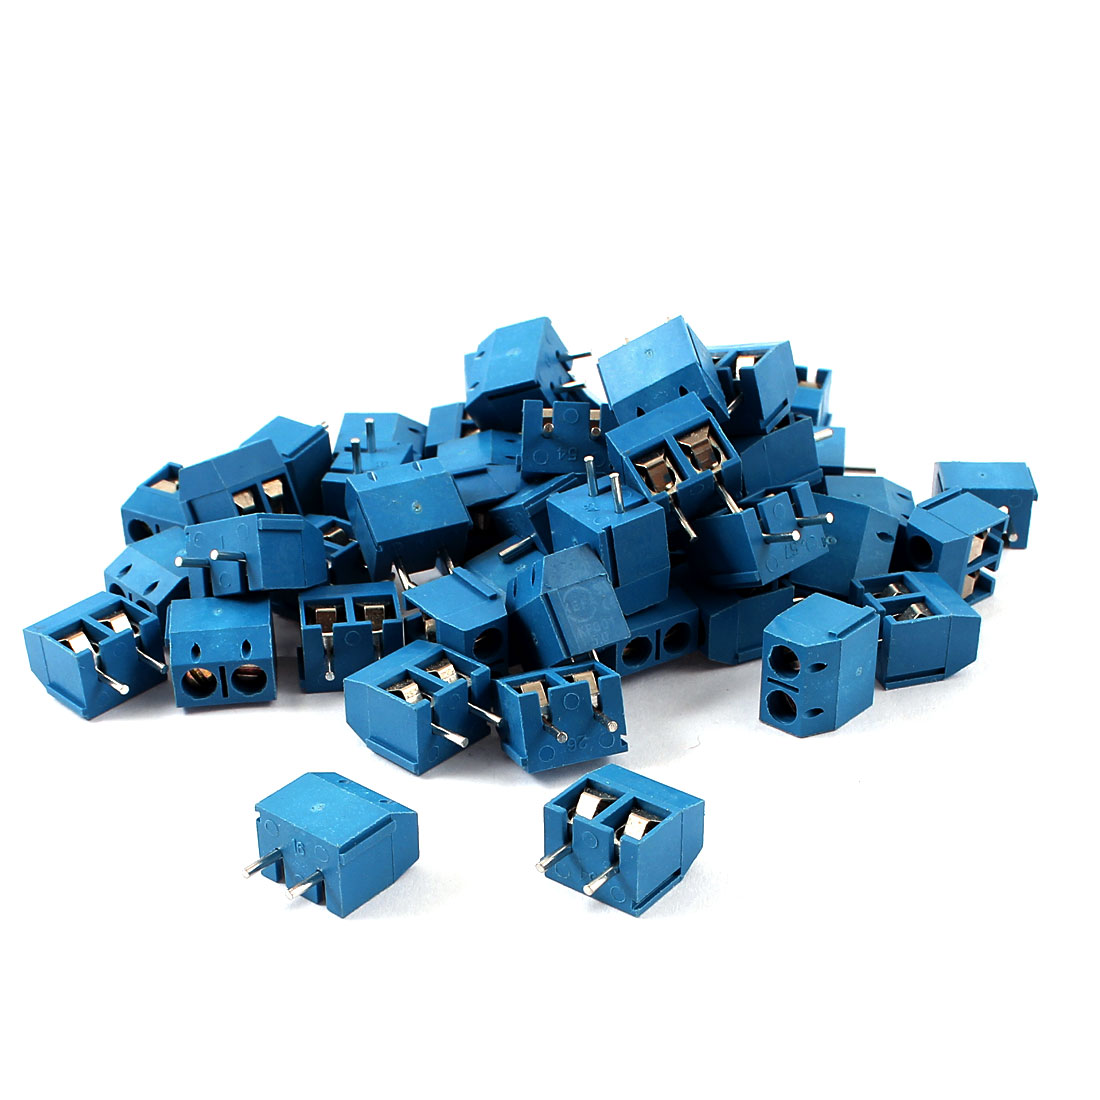 50 Pcs 5mm Spacing PCB Mount Screw Terminal Blocks Blue 300V 16A